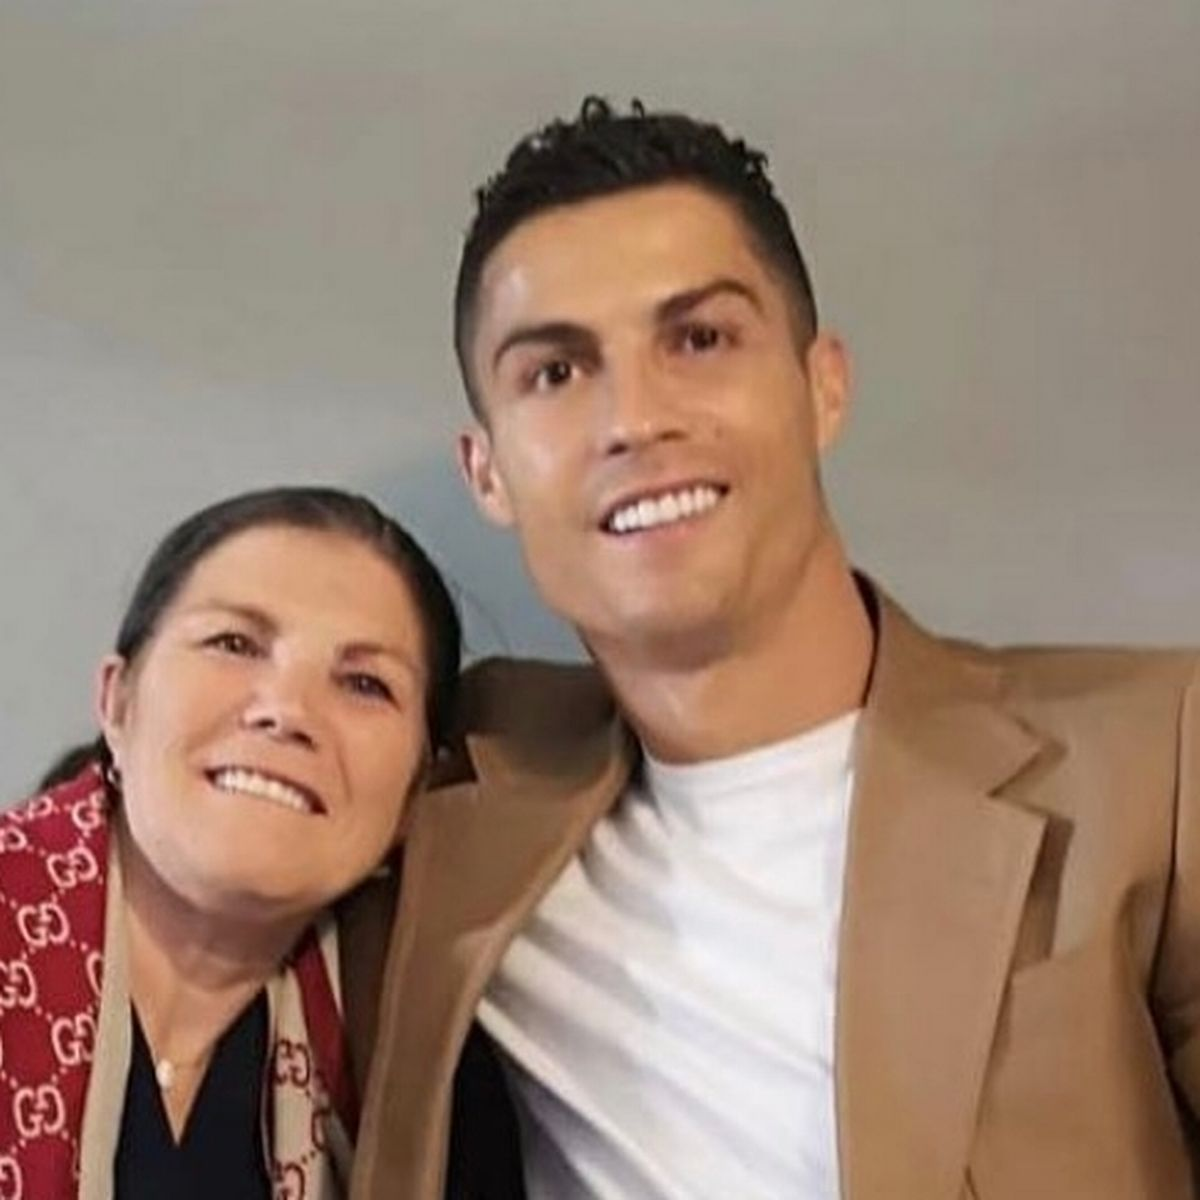 Cristiano Ronaldo's mother to persuade her son to return to Sporting Lisbon